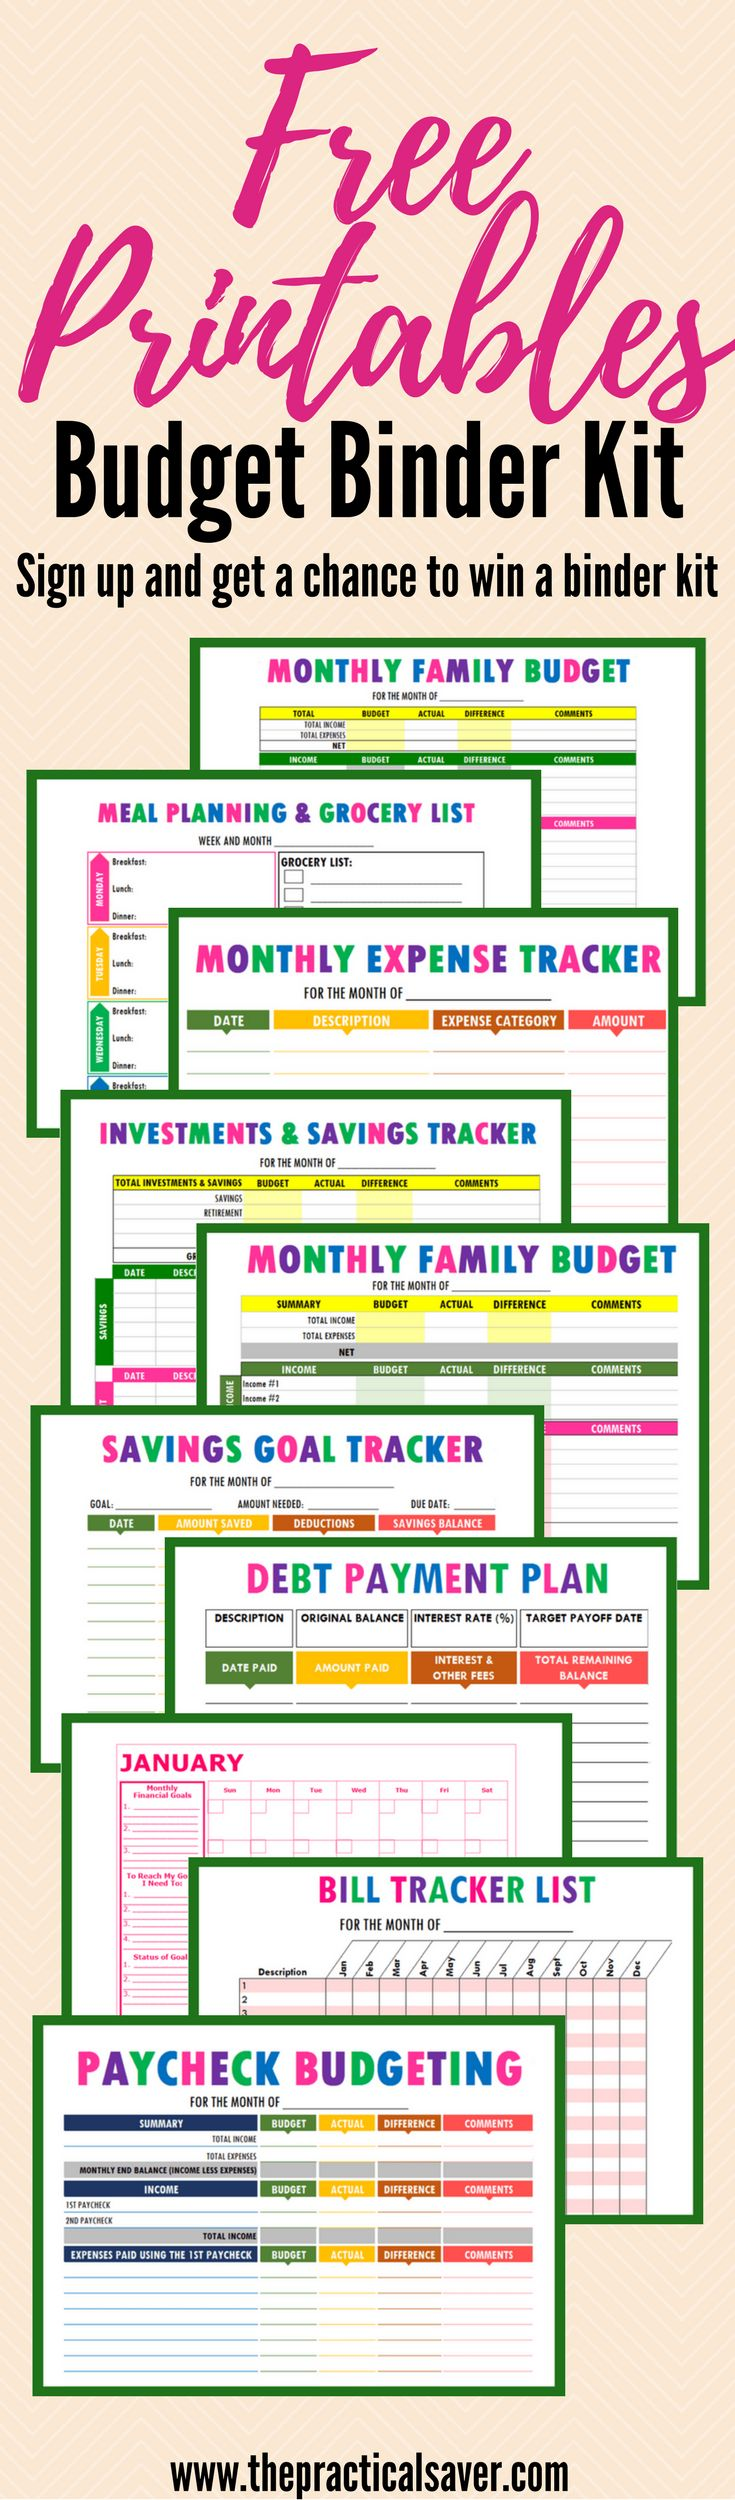 Best 25+ Monthly expense sheet ideas on Pinterest | Monthly budget ...